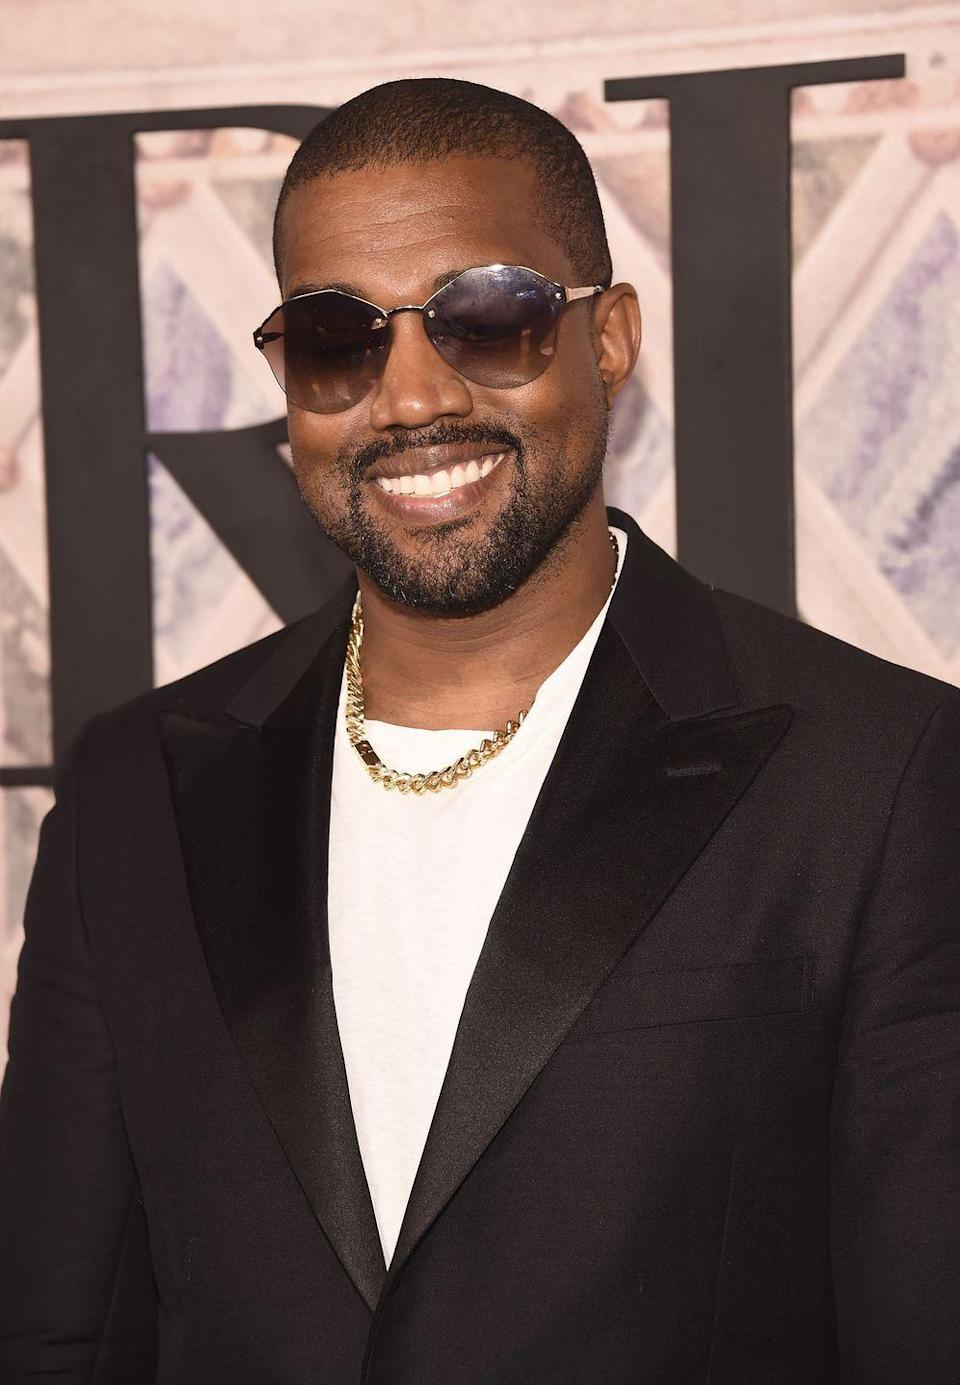 """<p>Kanye actually worked in fashion <em>before</em> designing Yeezys — when the rapper was in high school, he was a sales associate at the Gap. He told <em><a href=""""http://www.papermag.com/kanye-west-in-his-own-words-1427550639.html"""" rel=""""nofollow noopener"""" target=""""_blank"""" data-ylk=""""slk:Paper"""" class=""""link rapid-noclick-resp"""">Paper</a></em>, """"I don't think I had any desire to actually make clothes, but I always felt like that's what I wanted to be around."""" </p>"""